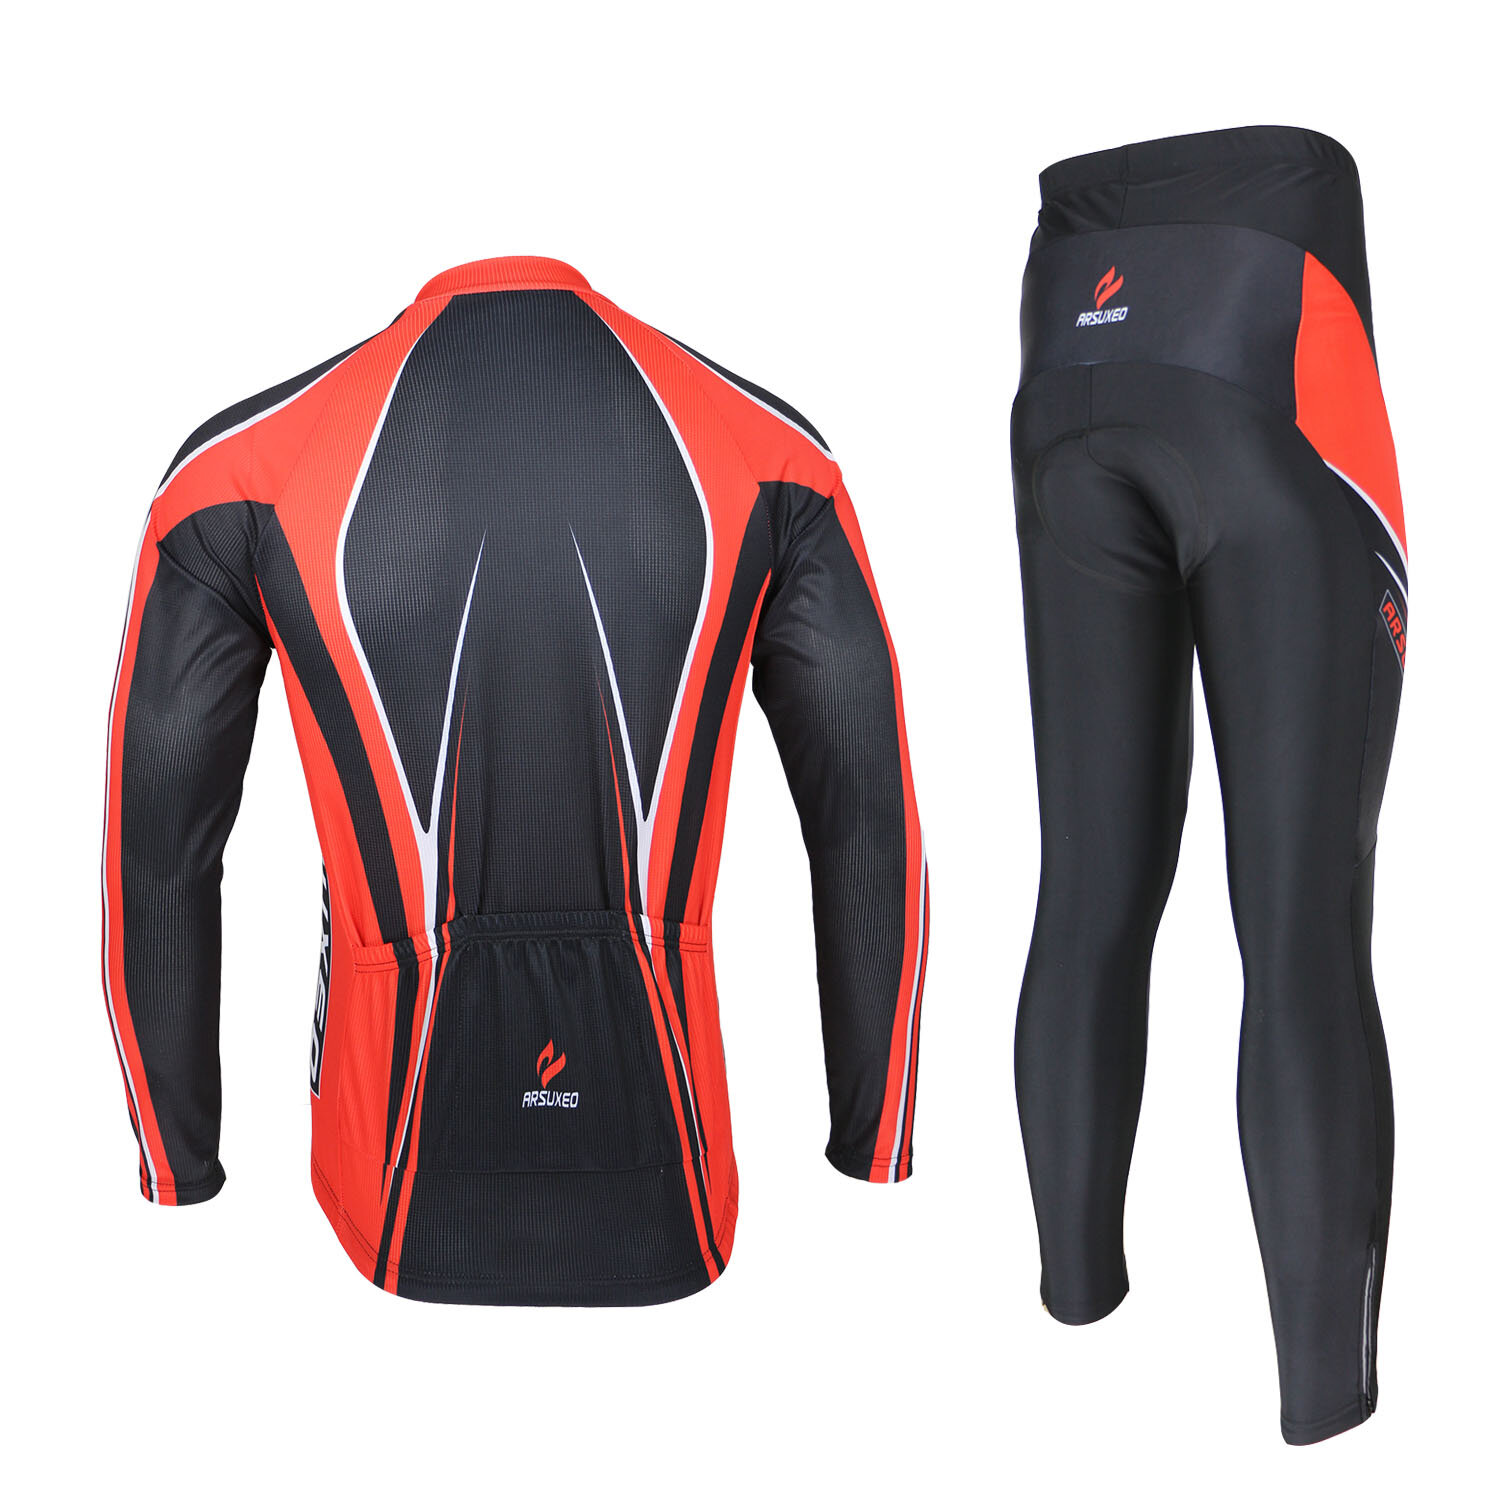 Mens Bicycle Bike Clothing Suit Cycling Cloth Sportswear Bib Shorts - 4